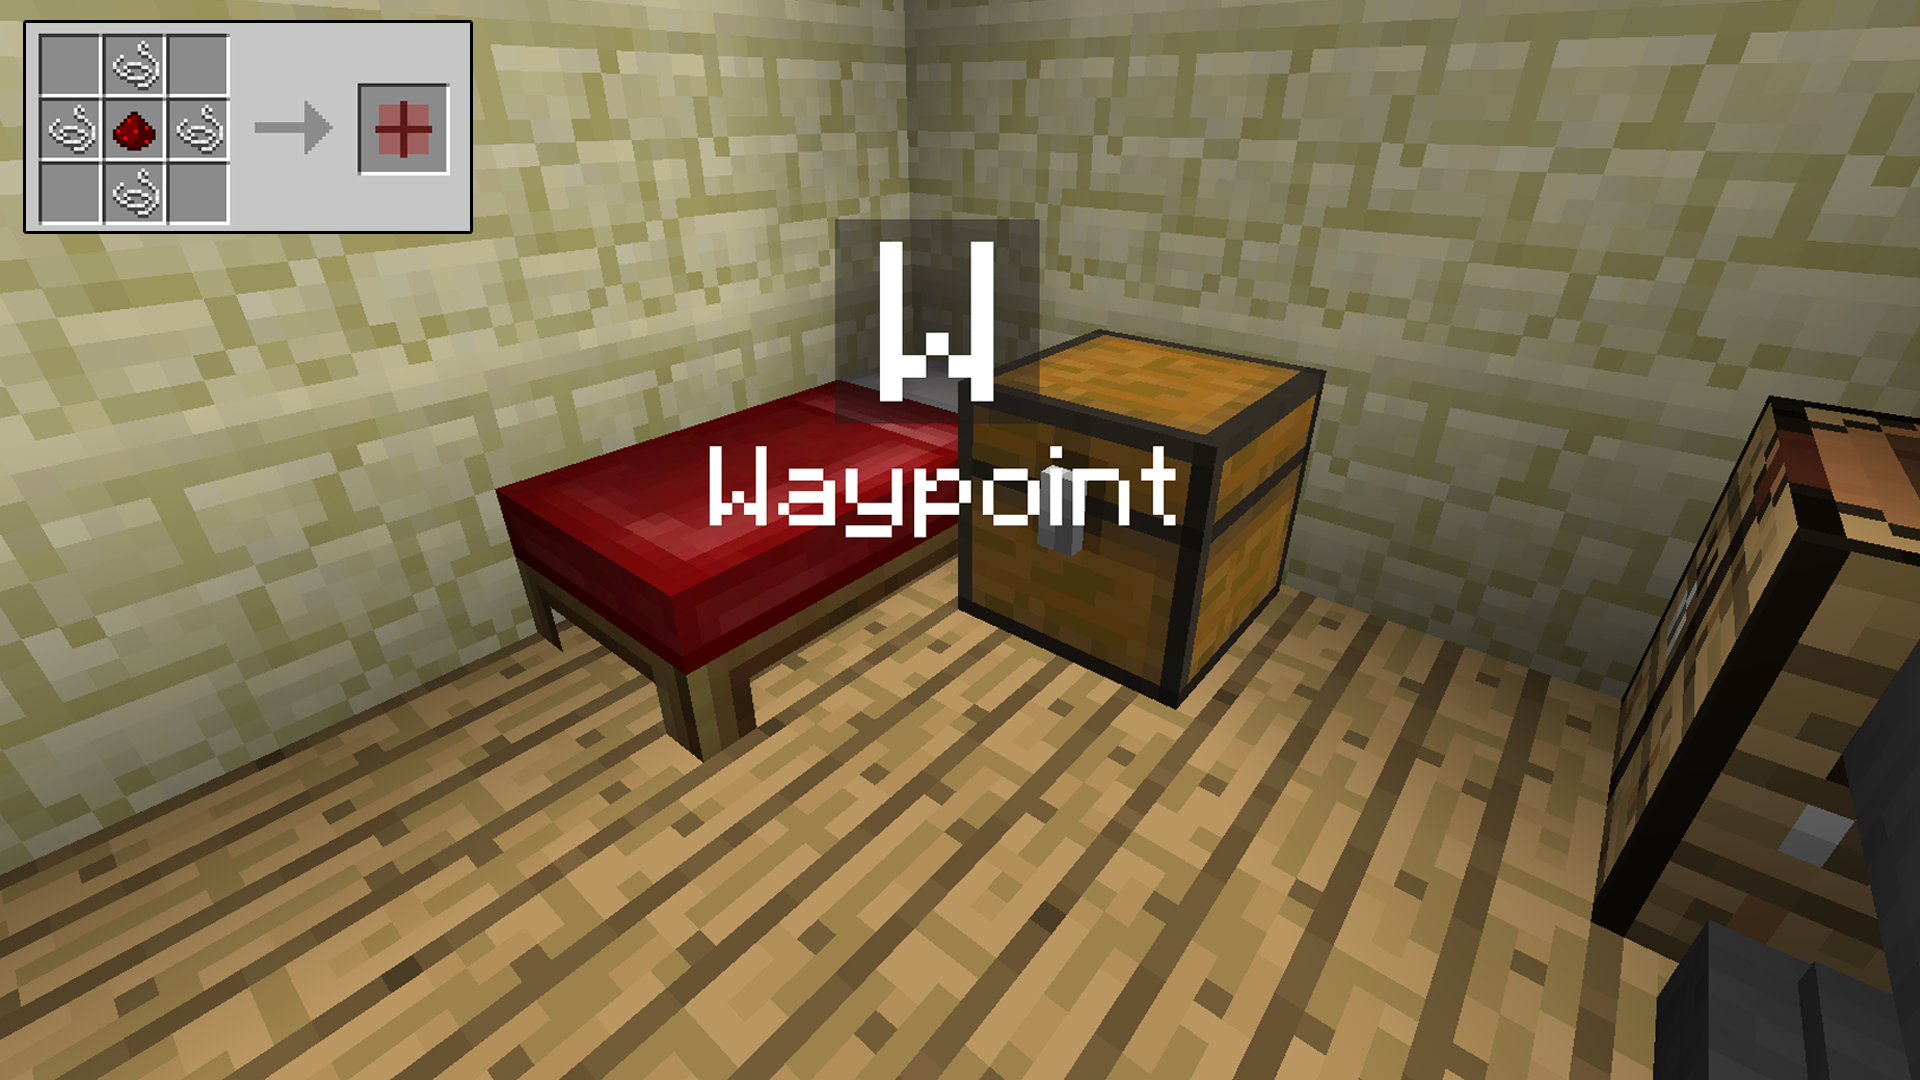 how to teleport to deathpoint in minecraft